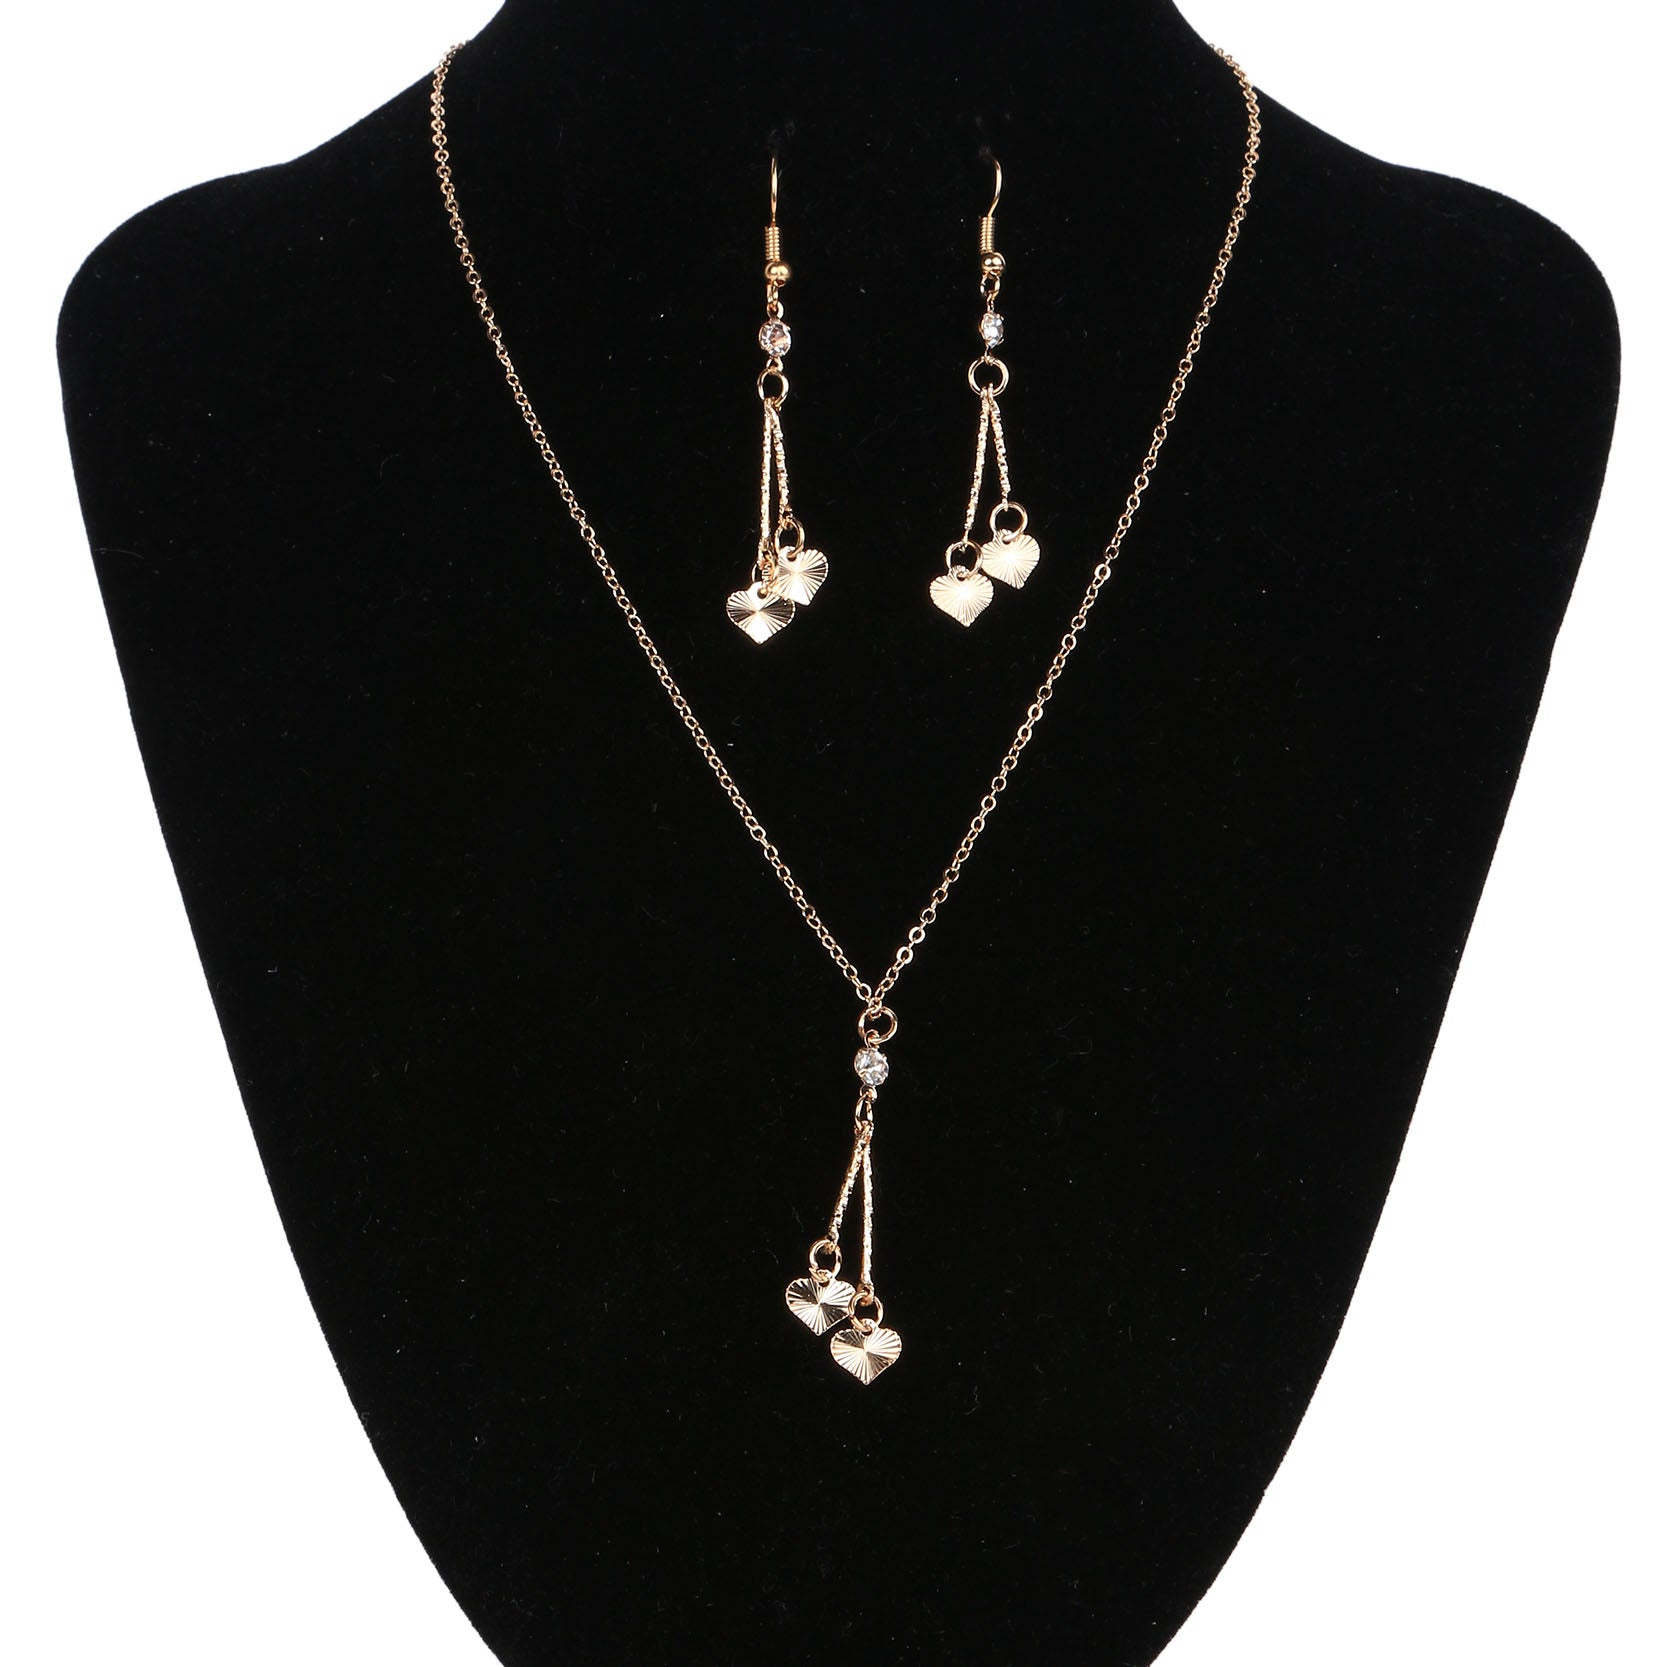 Gold Heart Vintage Jewelry Crystal Love Statement Necklace & Drop Earrings Set